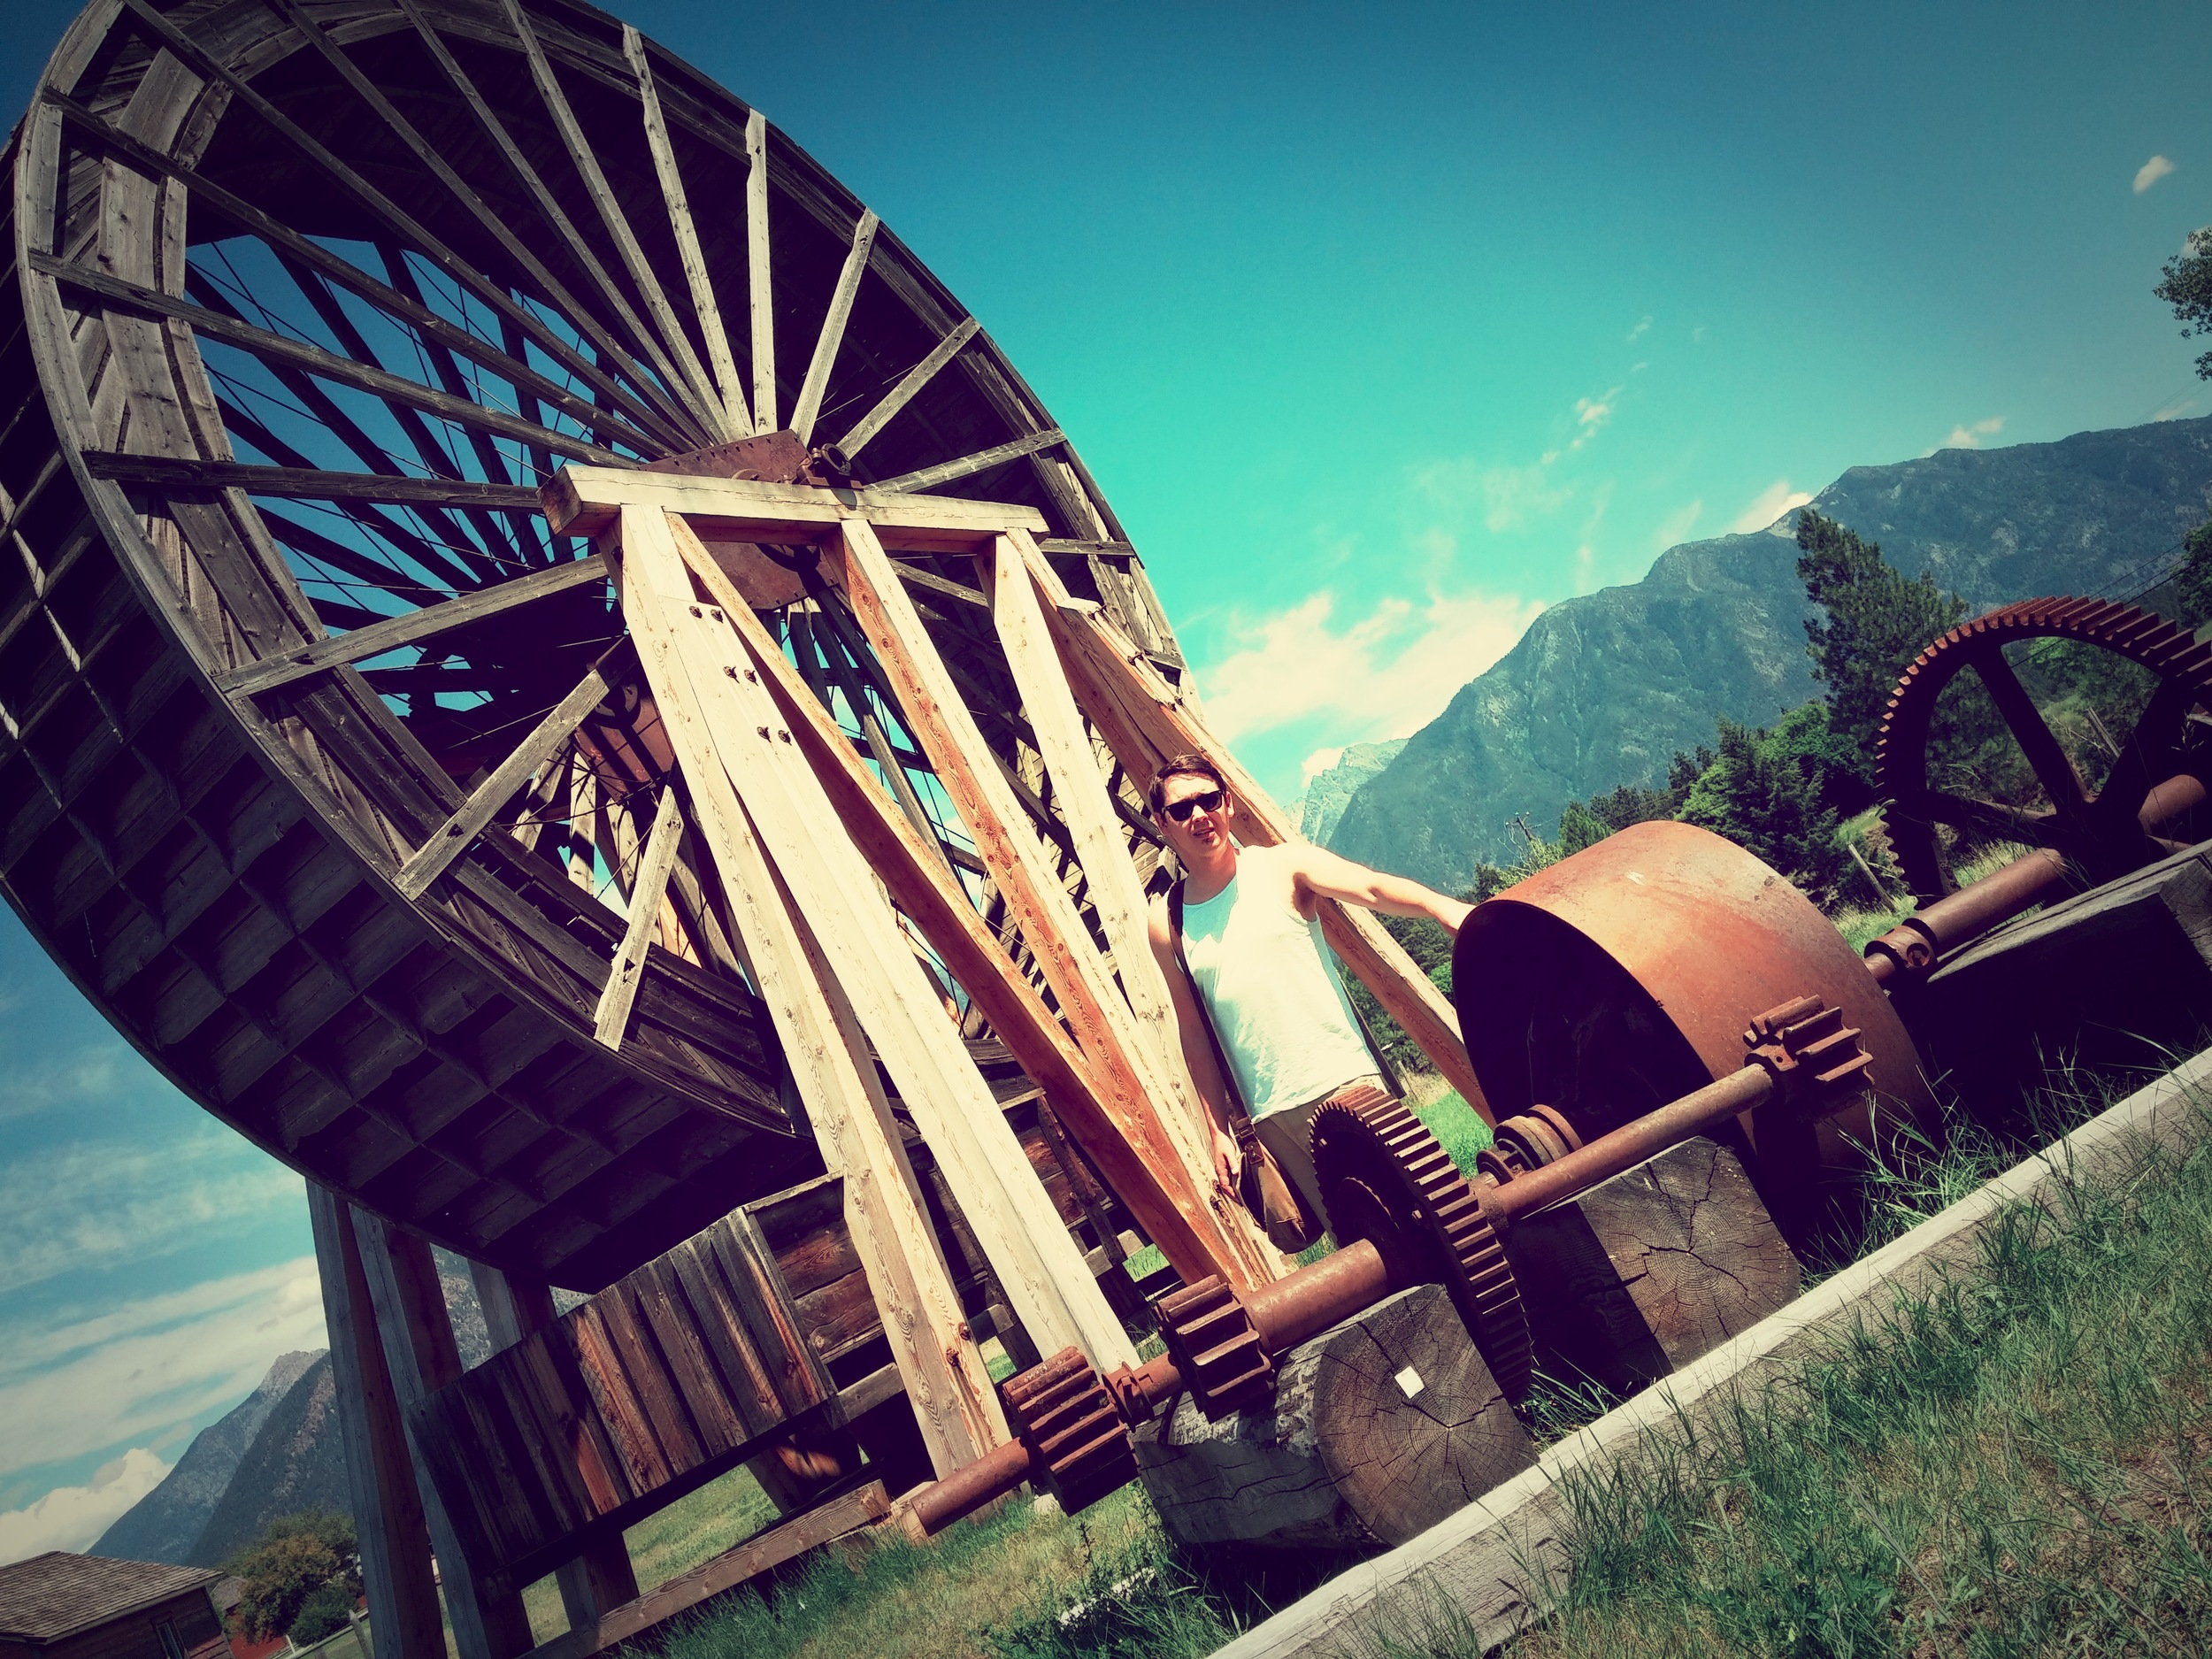 FORTE-STEELE-water-wheel.jpg